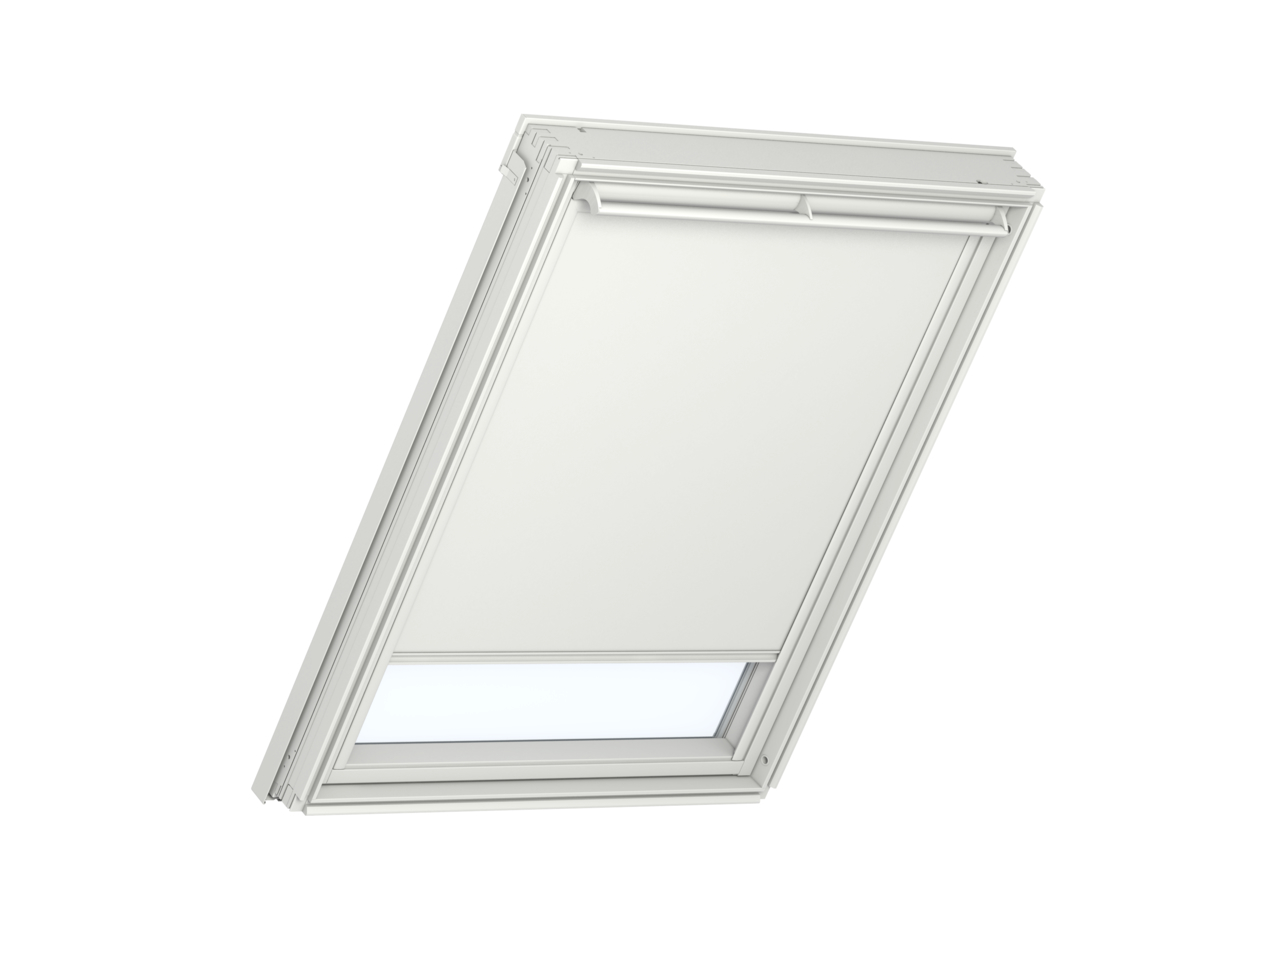 Tende oscuranti per finestre interne latest tende oscuranti finestre velux finestre per with - Ikea zanzariere per finestre ...